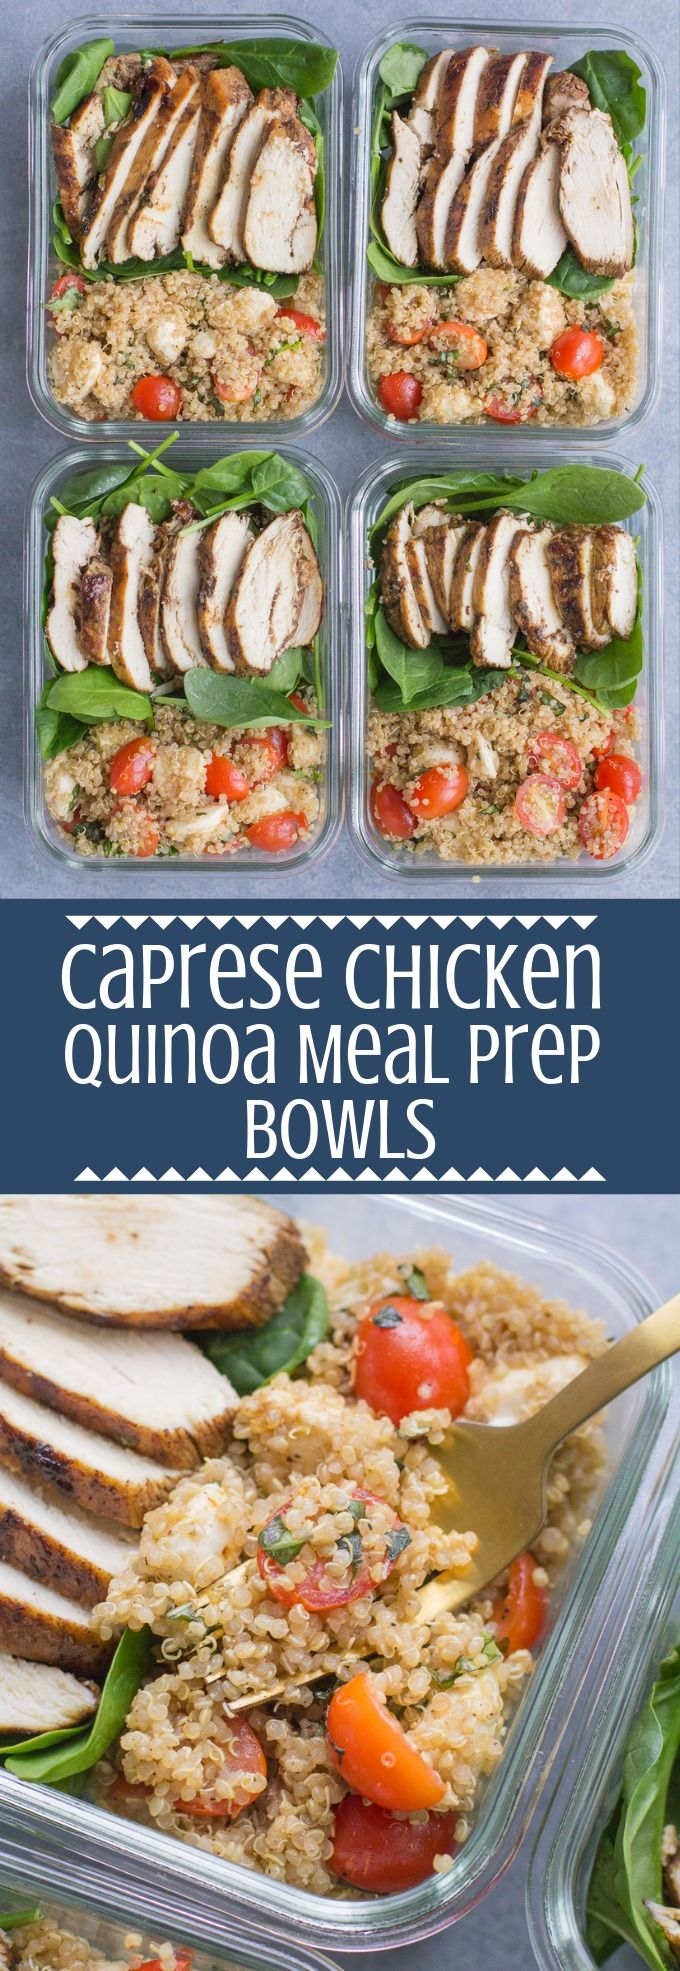 Chicken Caprese Quinoa Meal Prep Bowls images